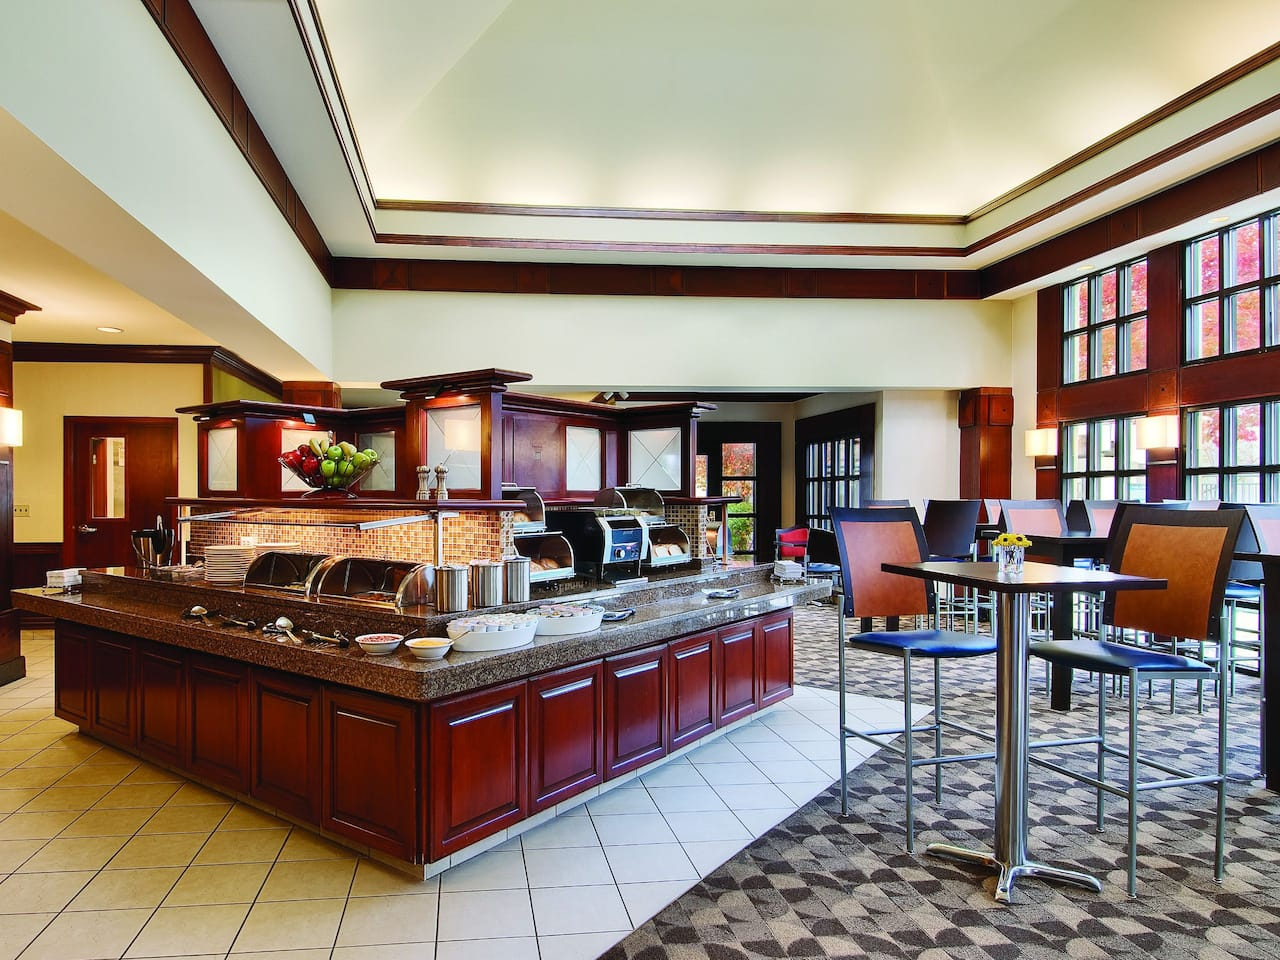 Hyatt House morristown lobby